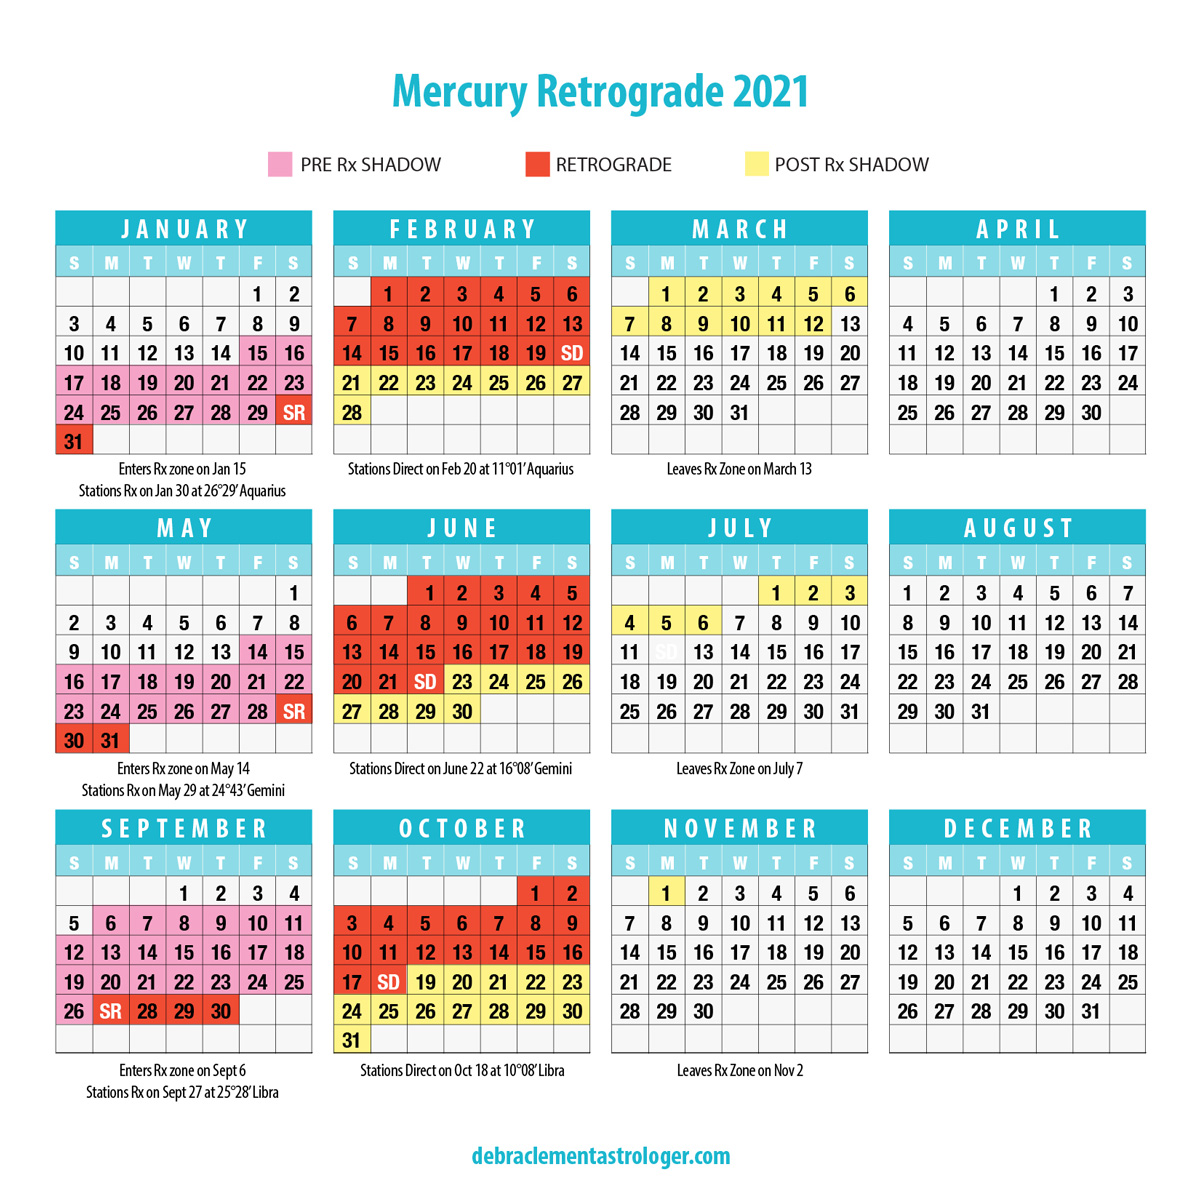 Mercury-Retrograde-2021